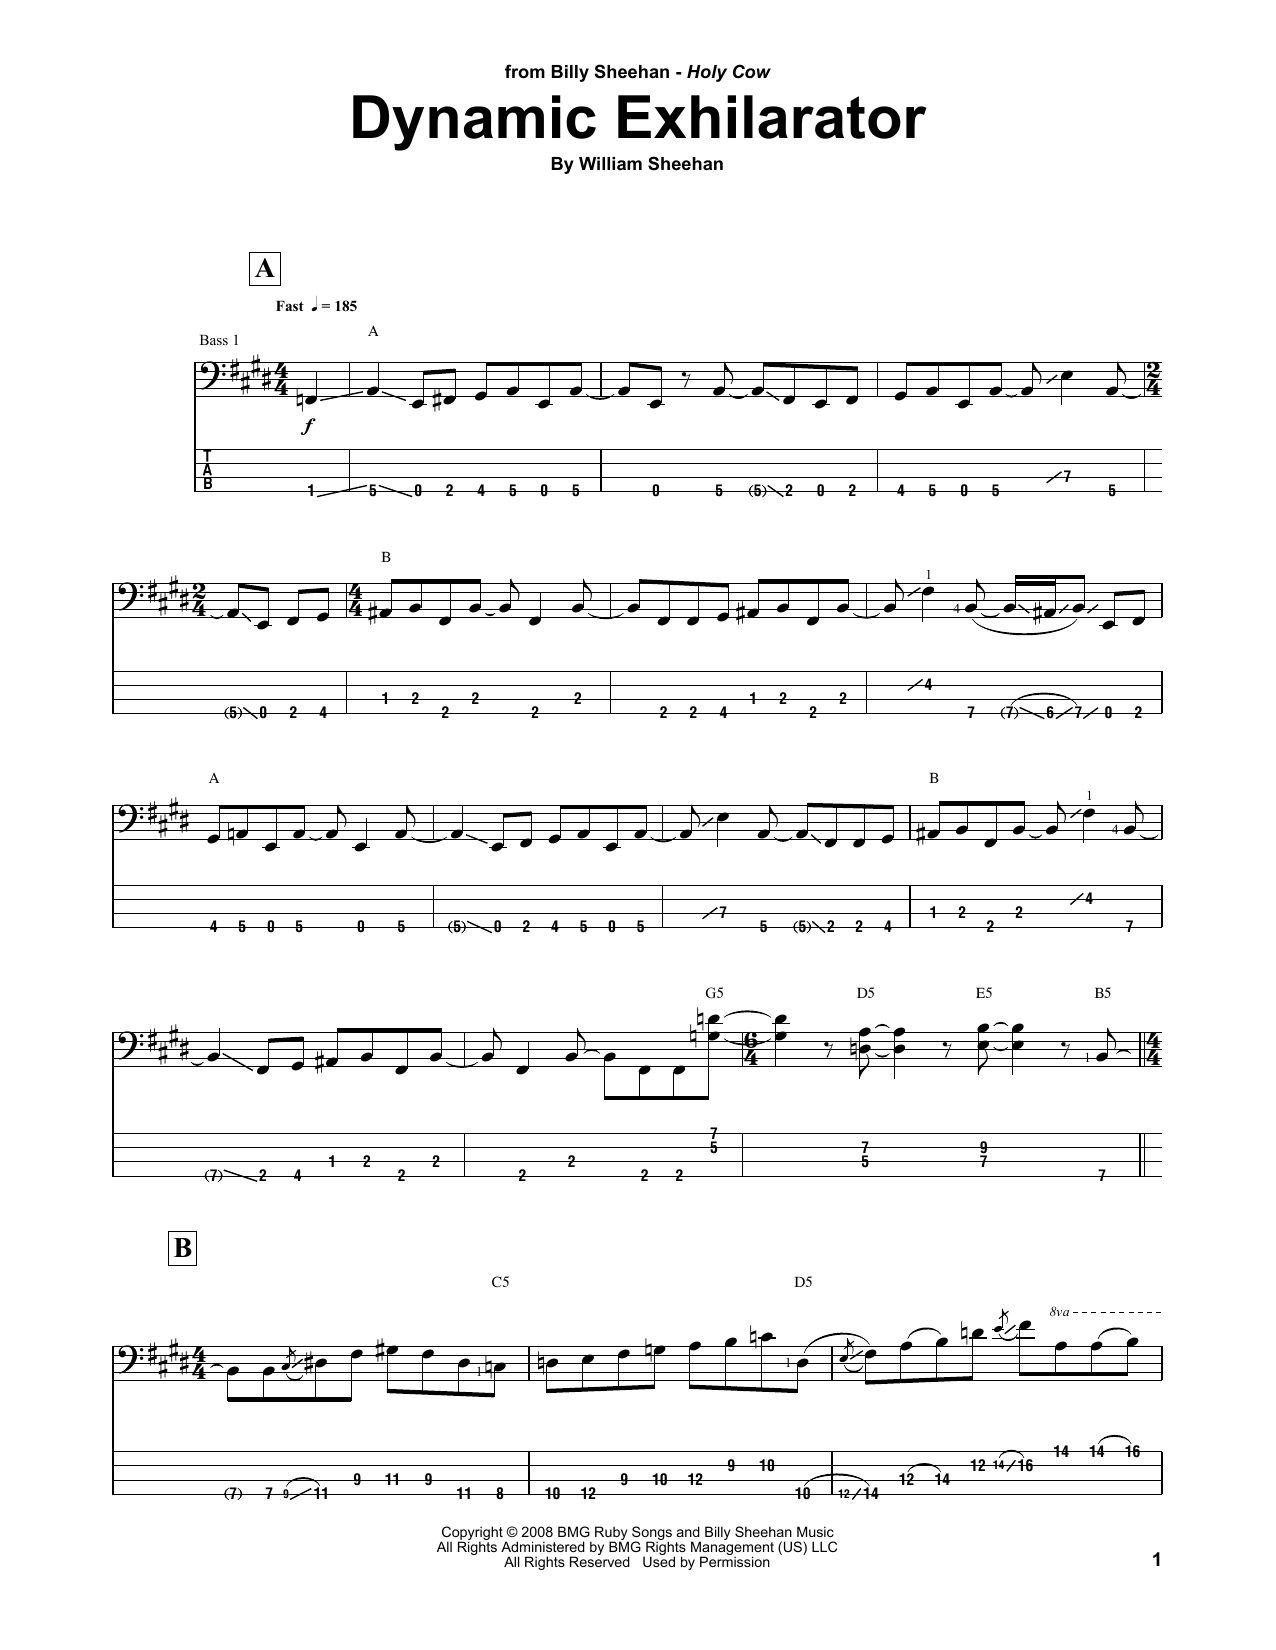 Dynamic Exhilarator Sheet Music